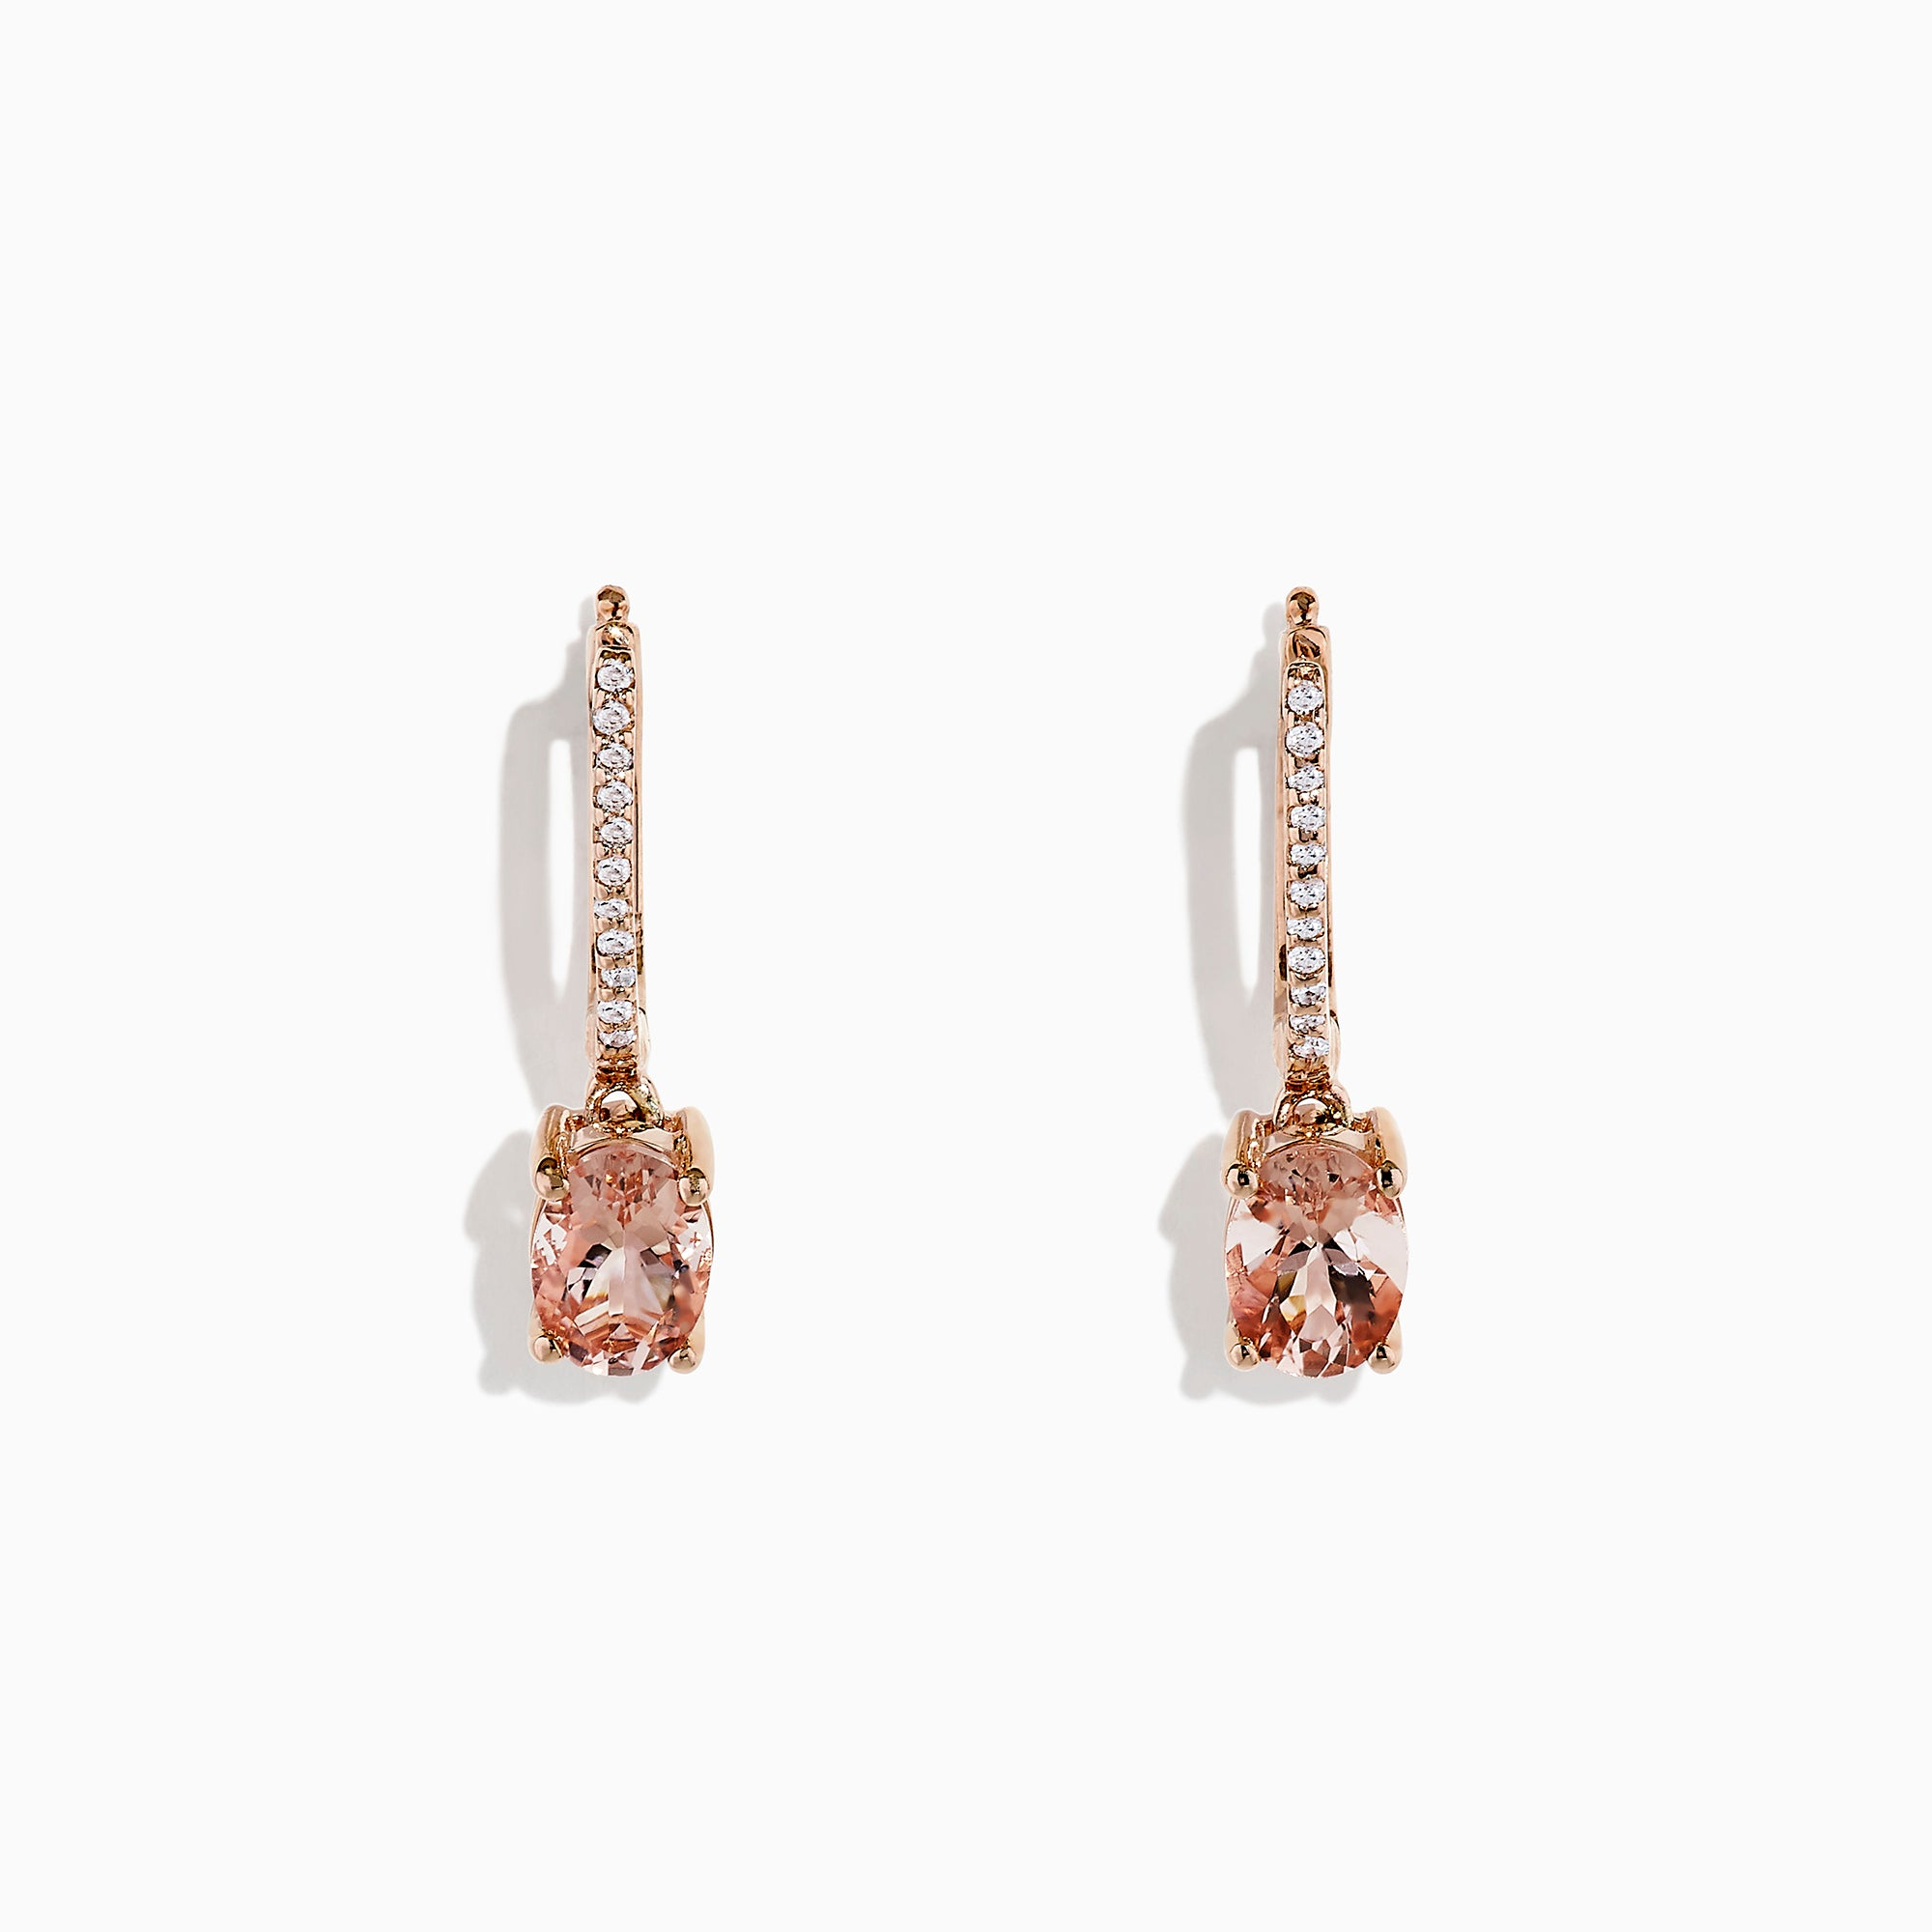 Effy Blush 14K Rose Gold Morganite and Diamond Earrings, 1.49 TCW